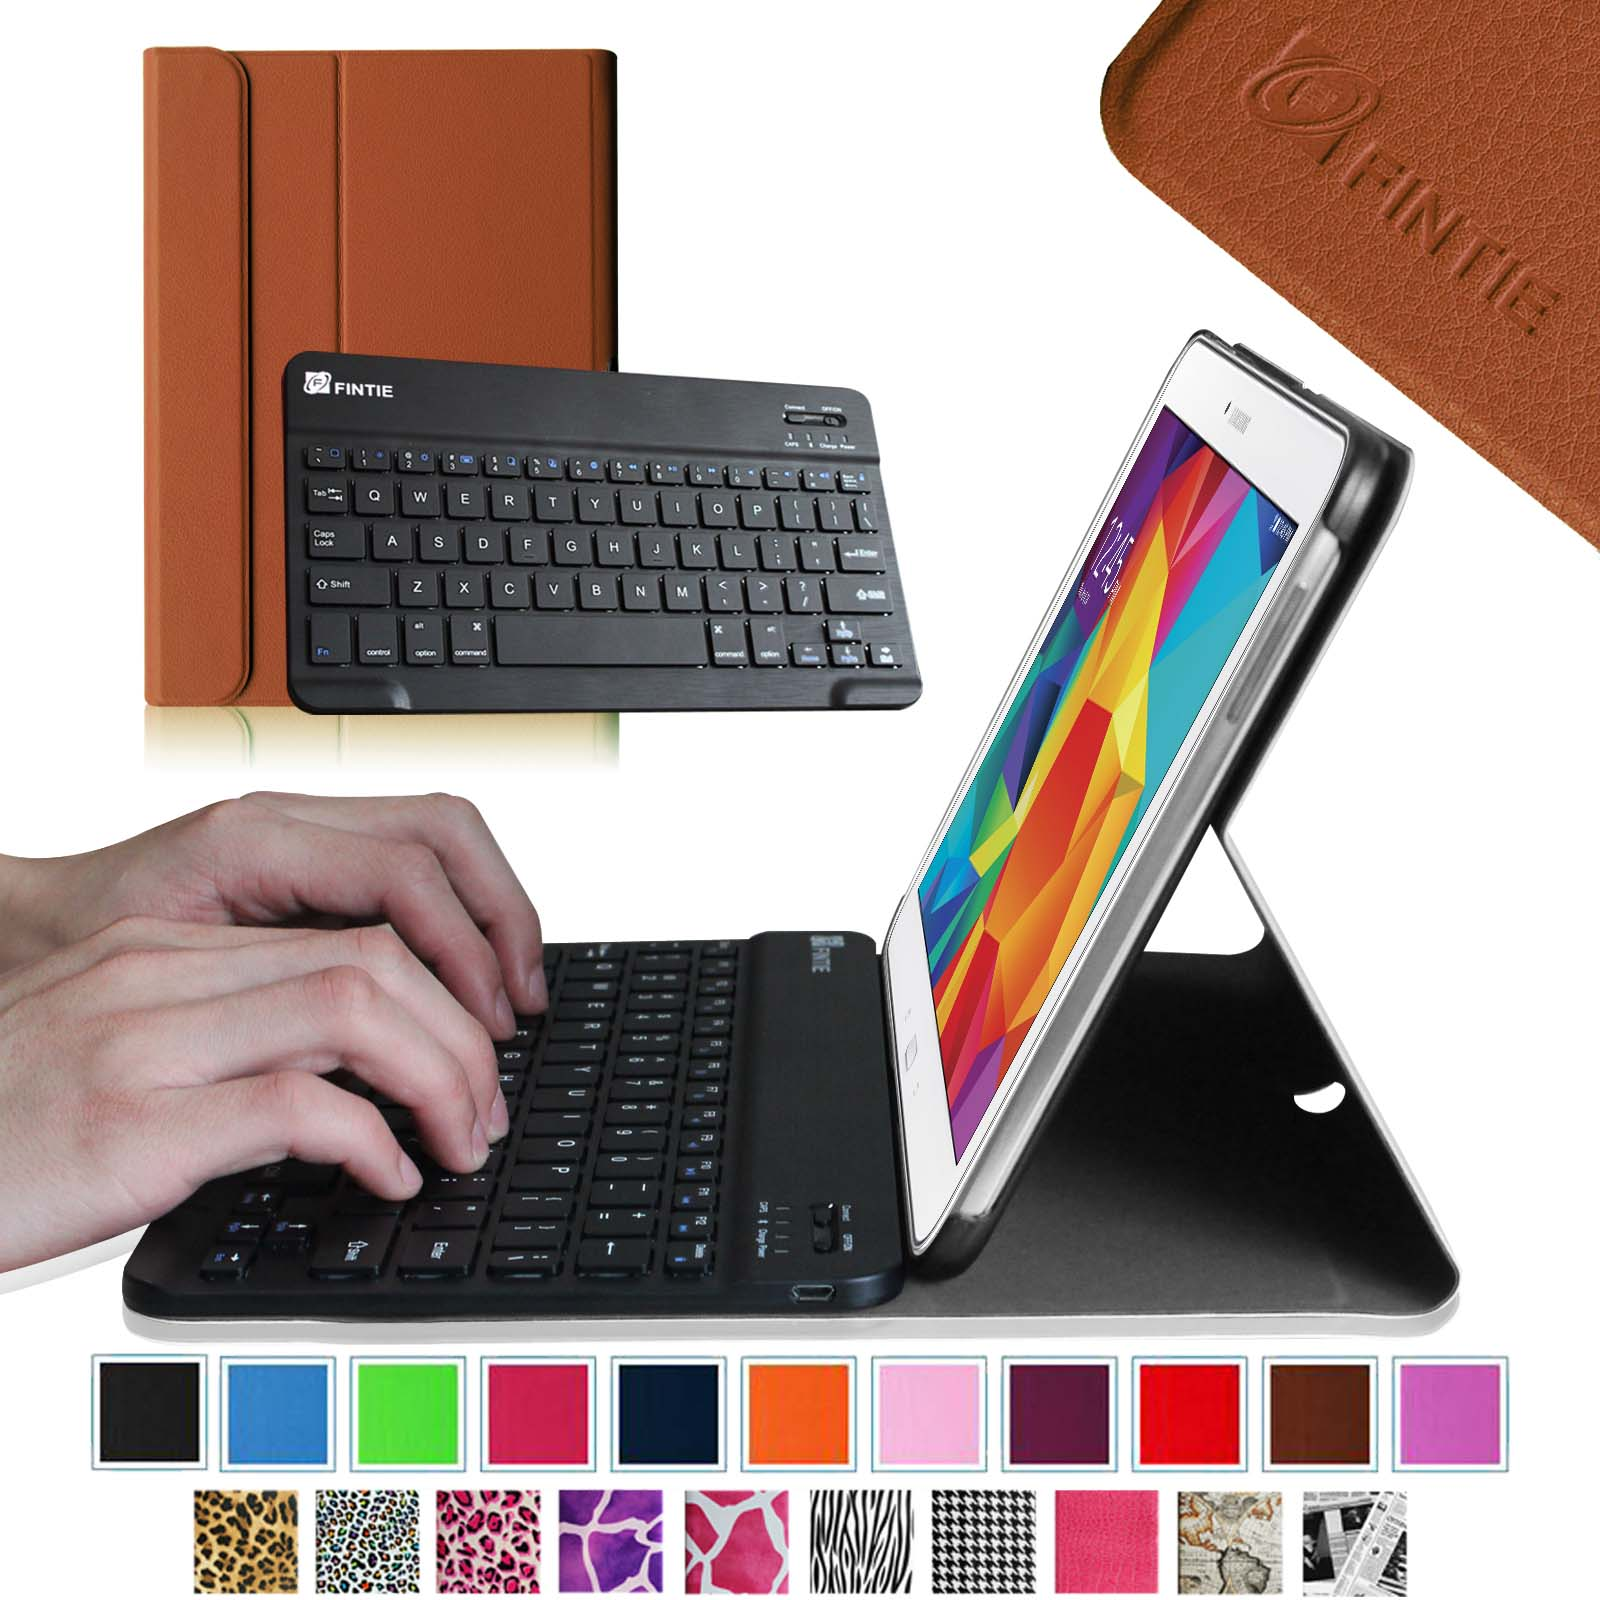 Fintie Samsung Galaxy Tab 4 10.1 inch Tablet Keyboard Case - Smart Cover w/ Detachable Bluetooth Keyboard, Brown